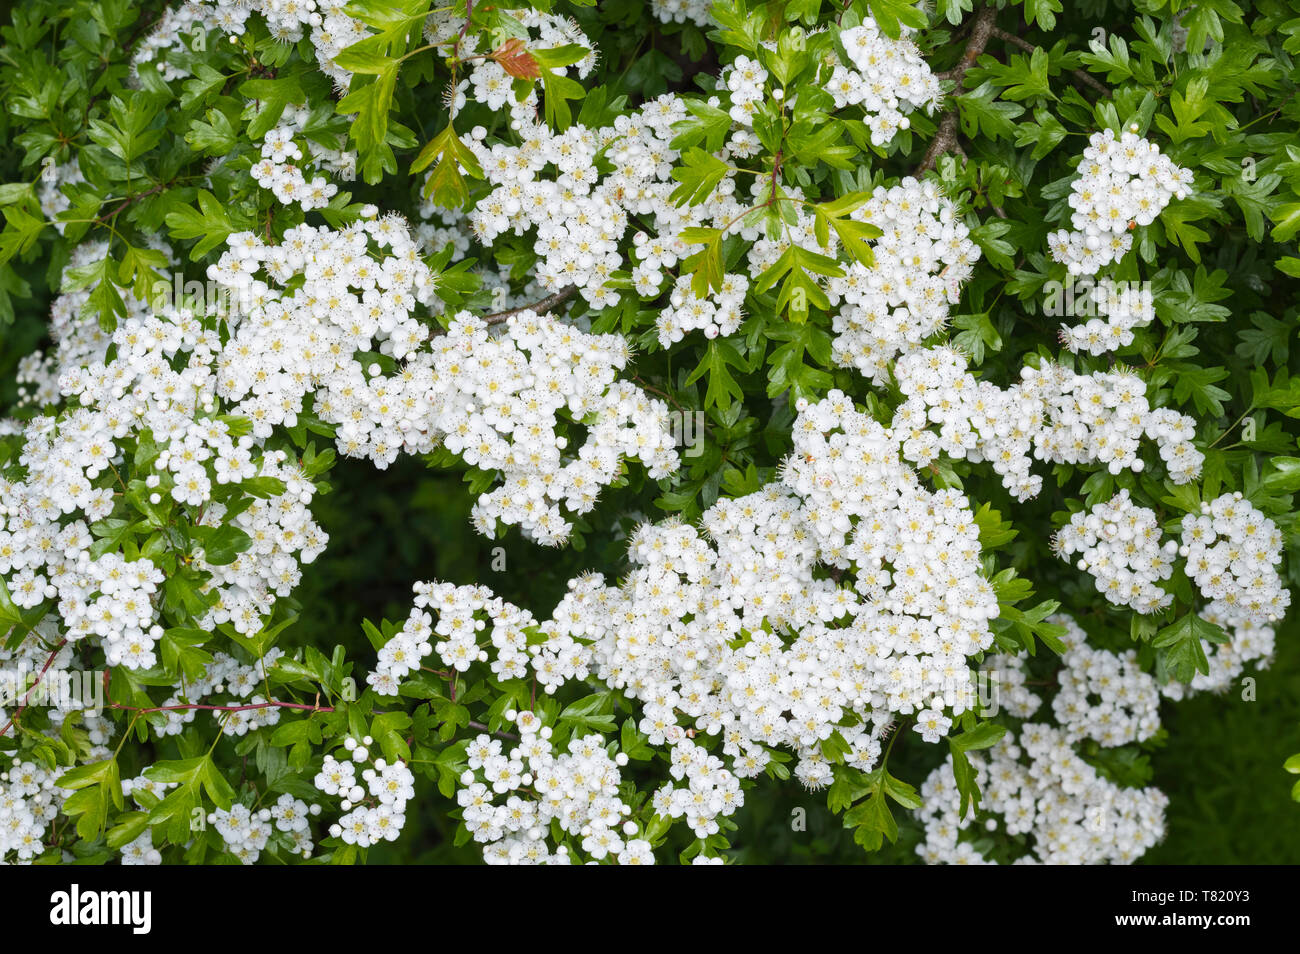 Common Hawthorn tree (Crataegus monogyna), AKA Quickthorn, Thornapple, May-tree, Whitethorn, Hawberry in Spring (May) in West Sussex, UK. - Stock Image